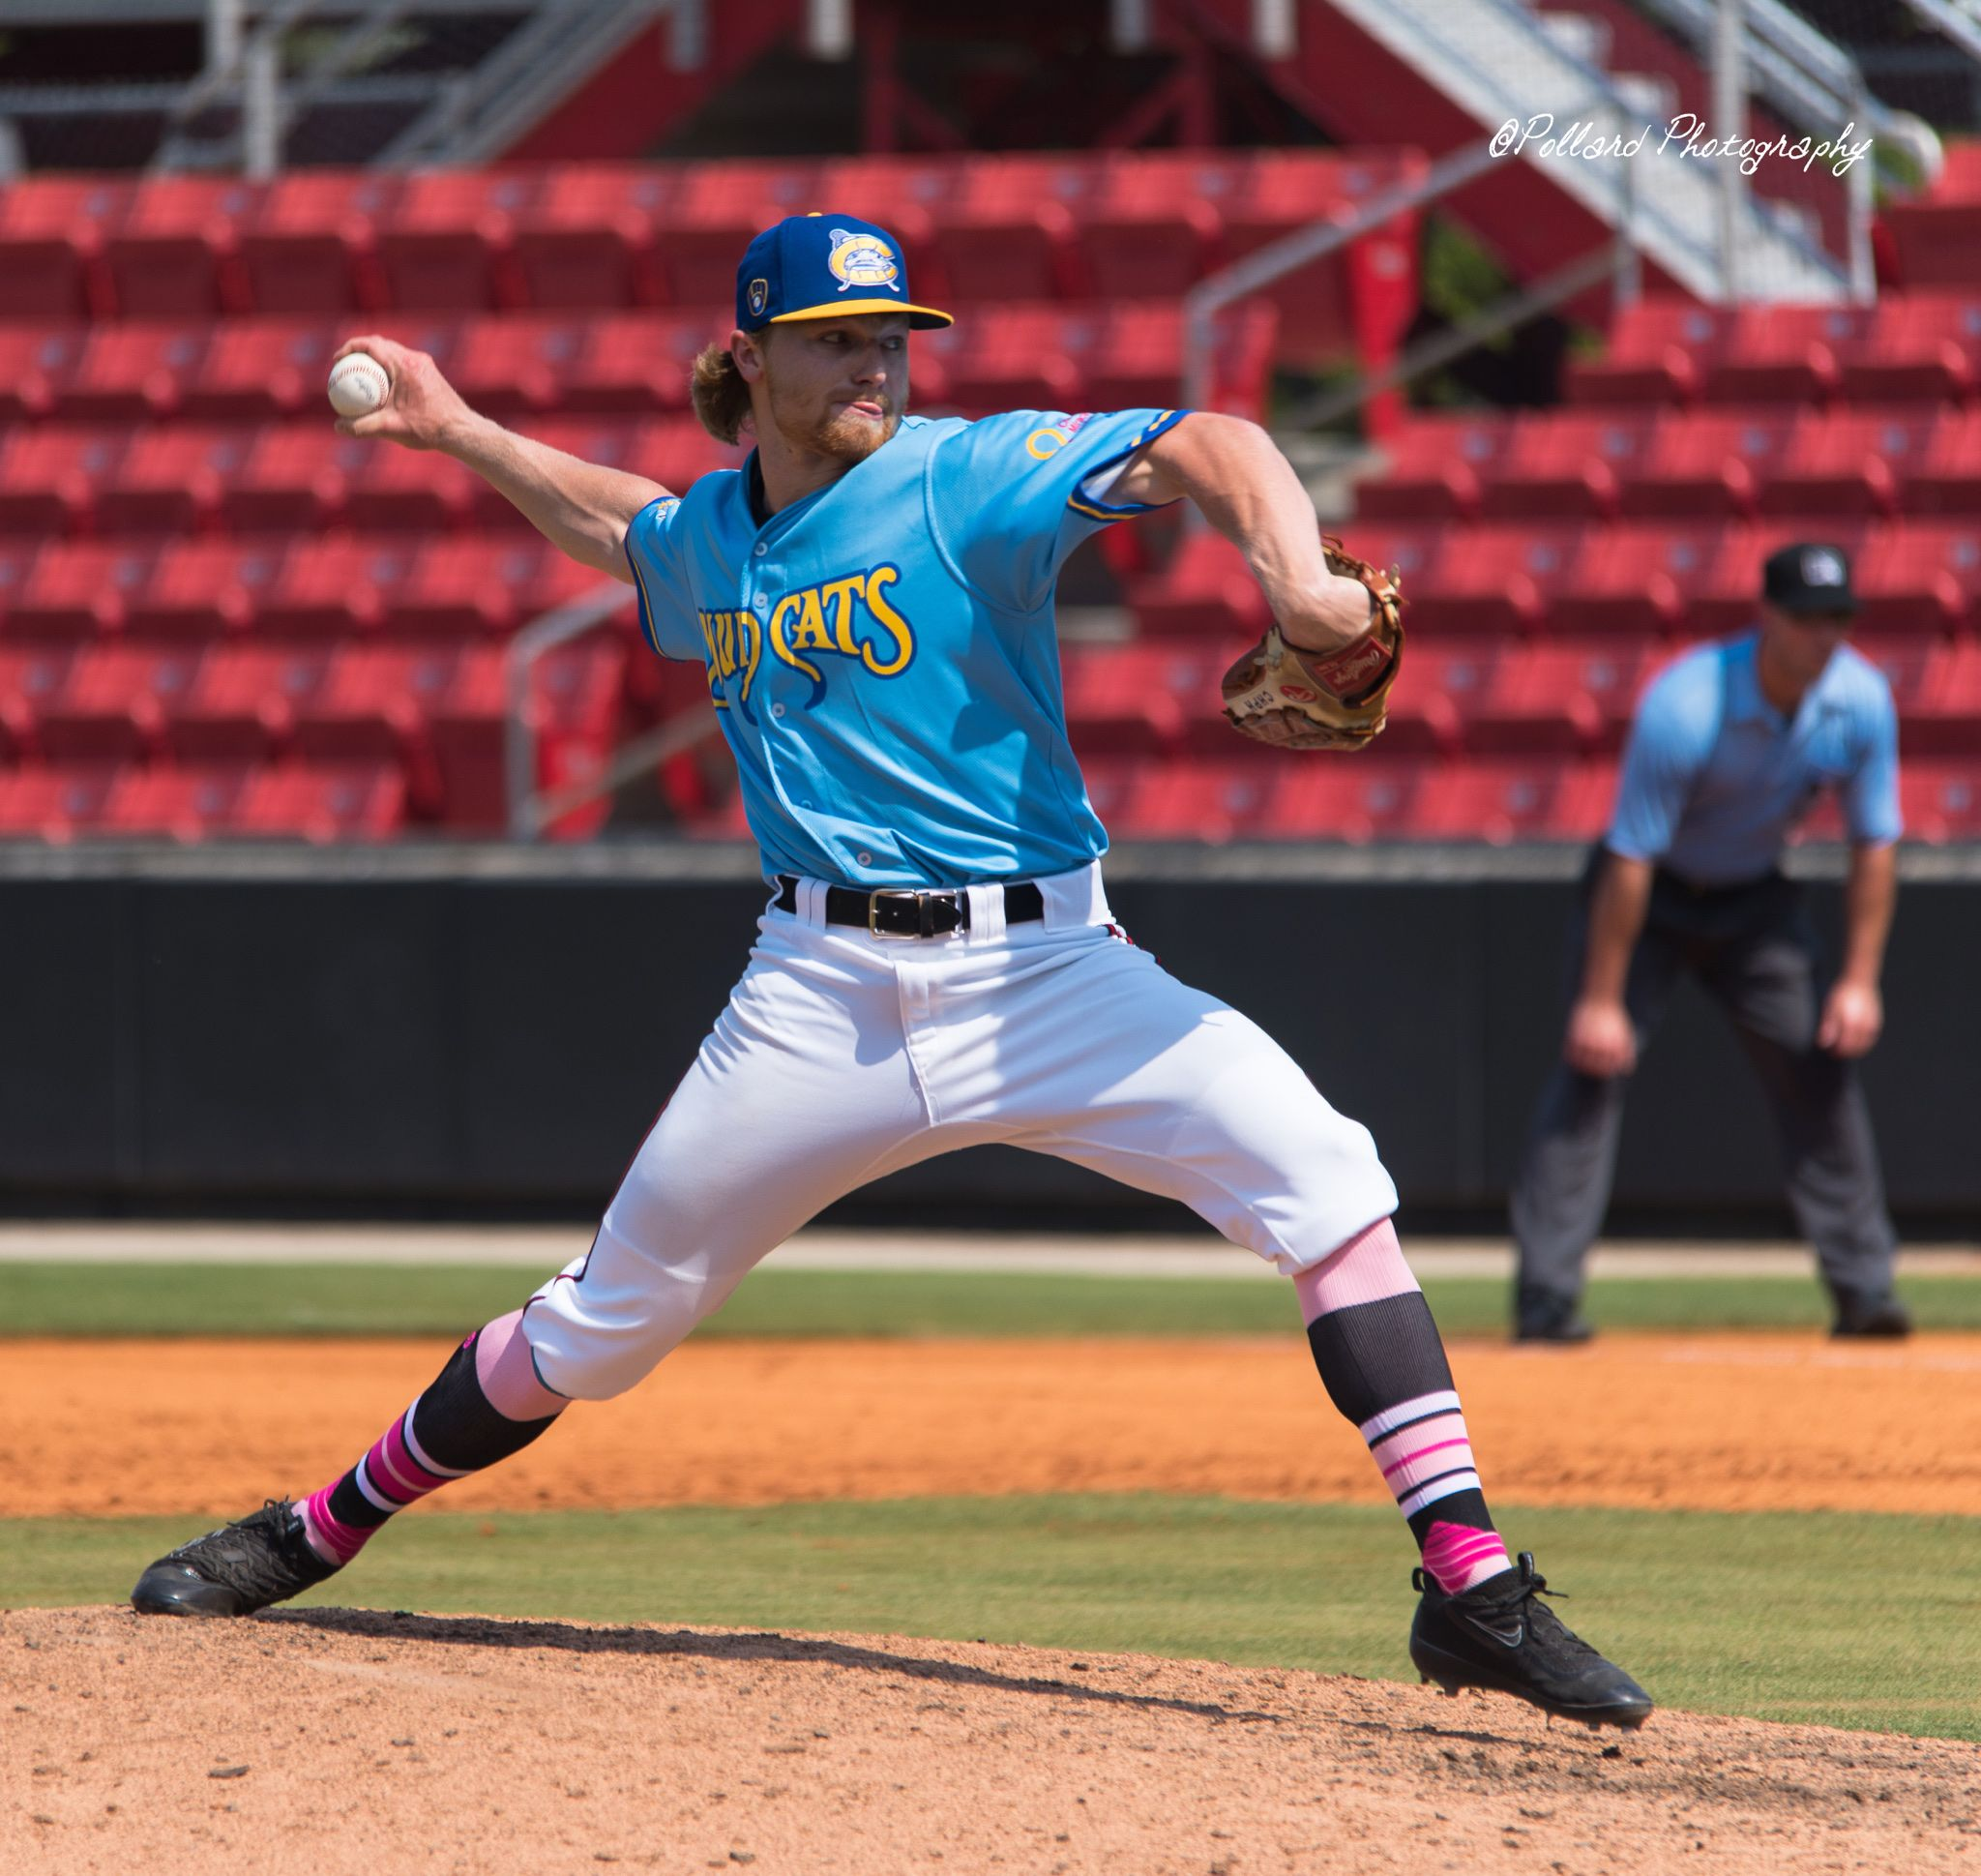 Mudcats pitcher Photography articles, Photography, My photos